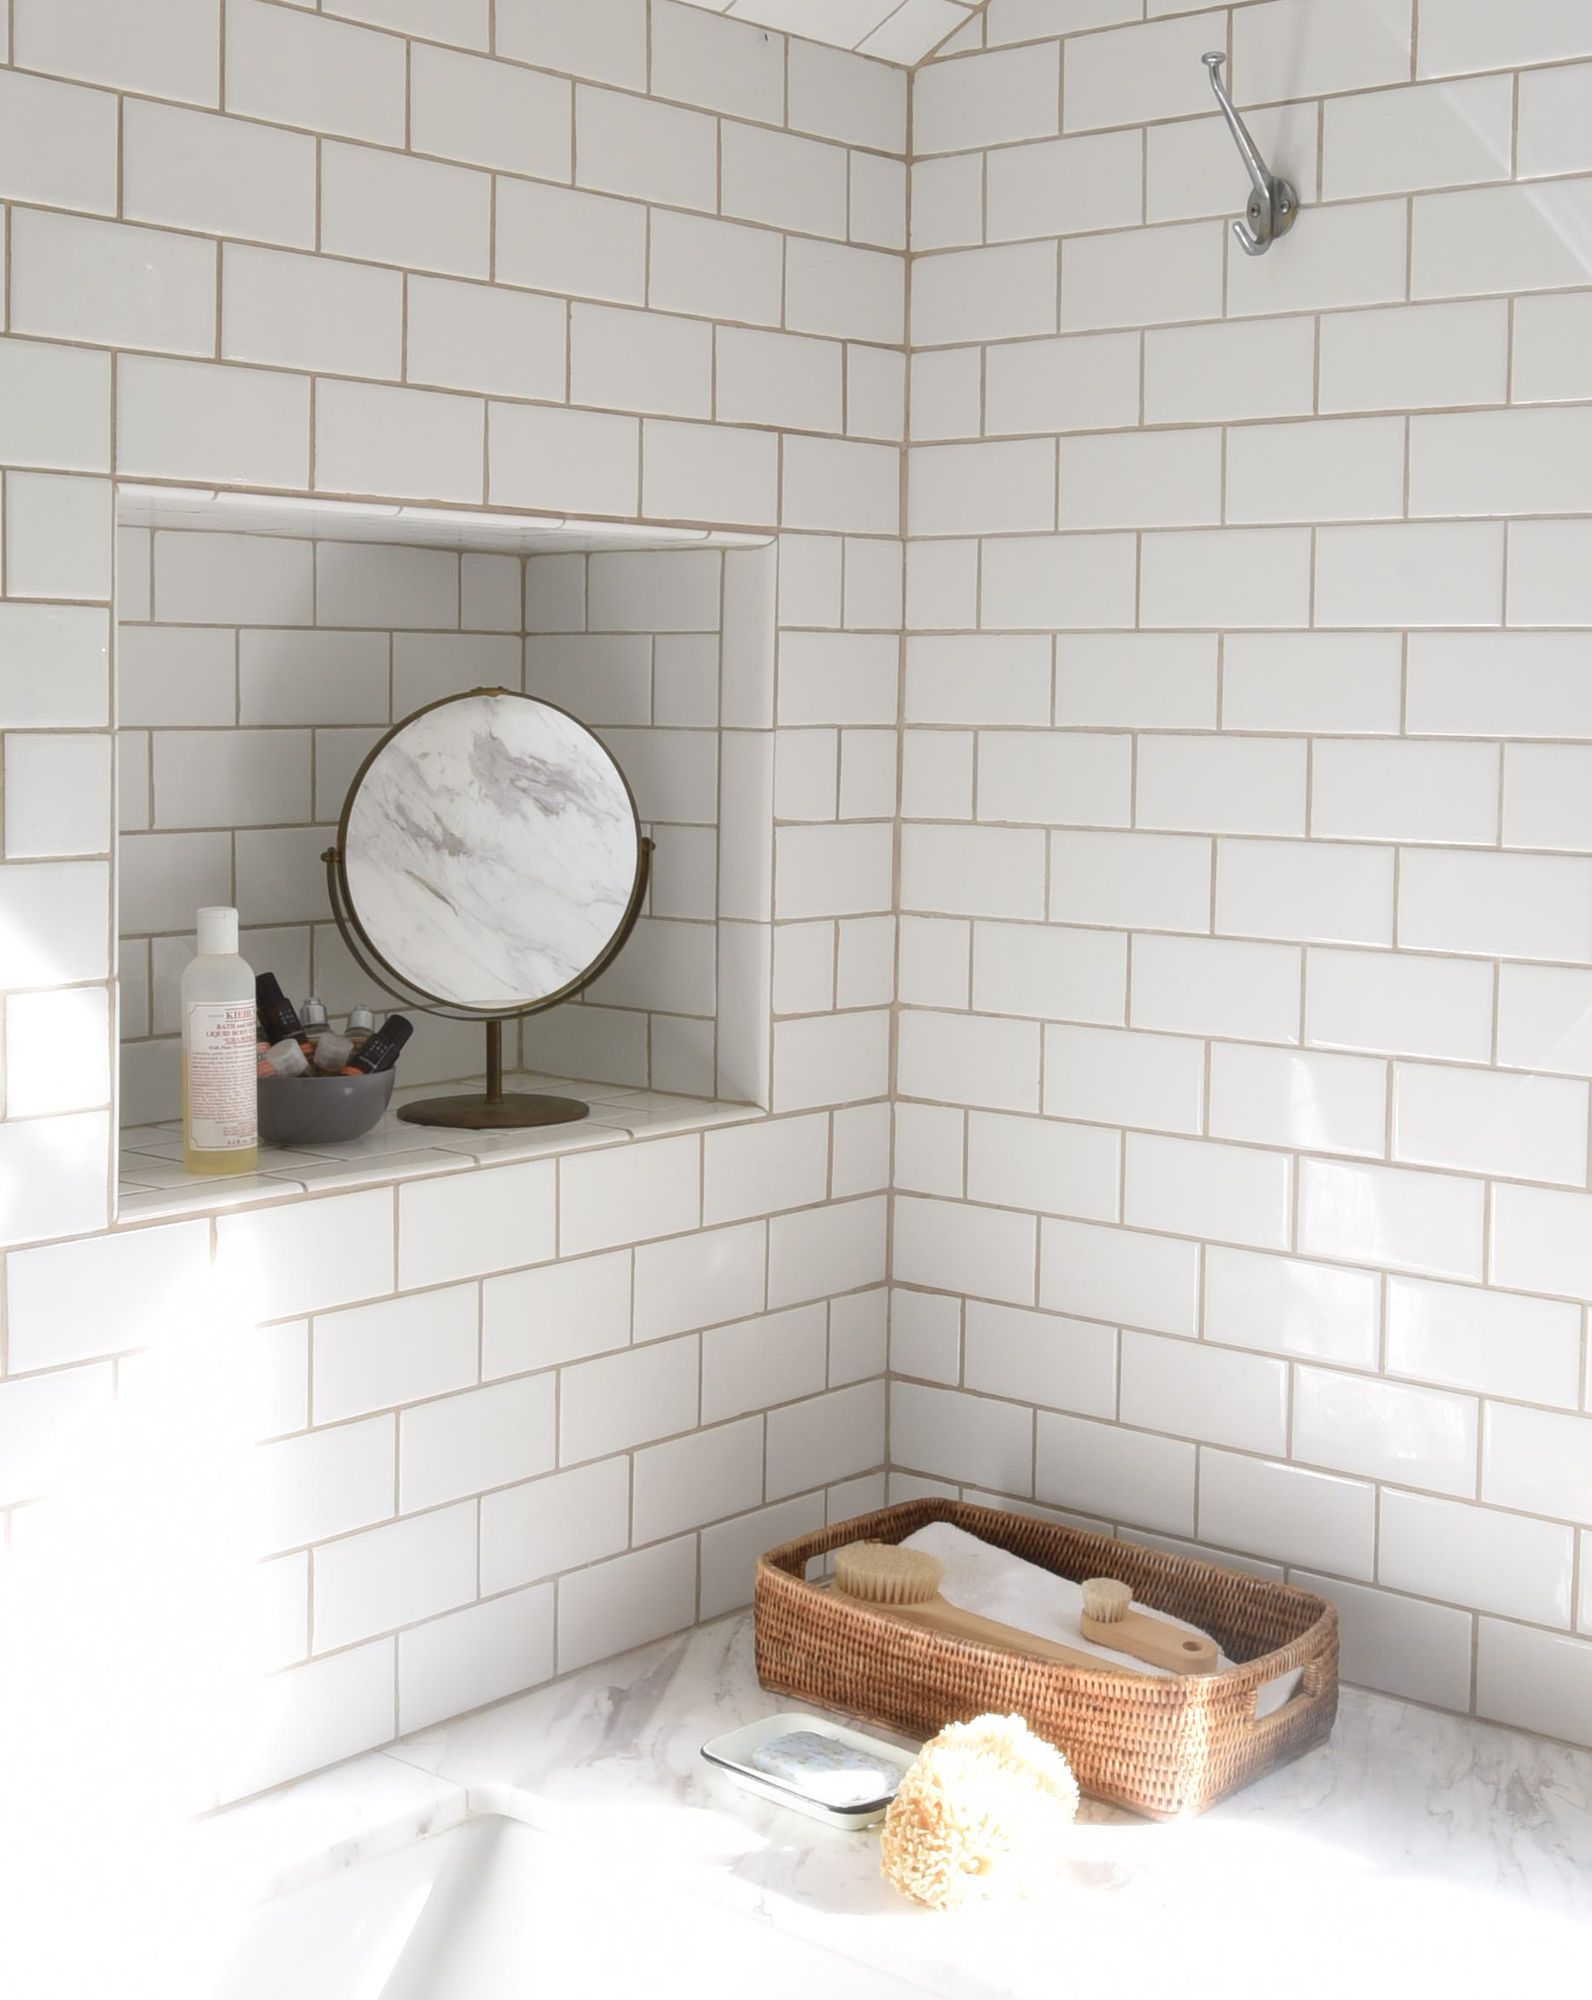 Bathroom of the Week: A 1920s-Inspired Bathroom in a Renovated NY ...